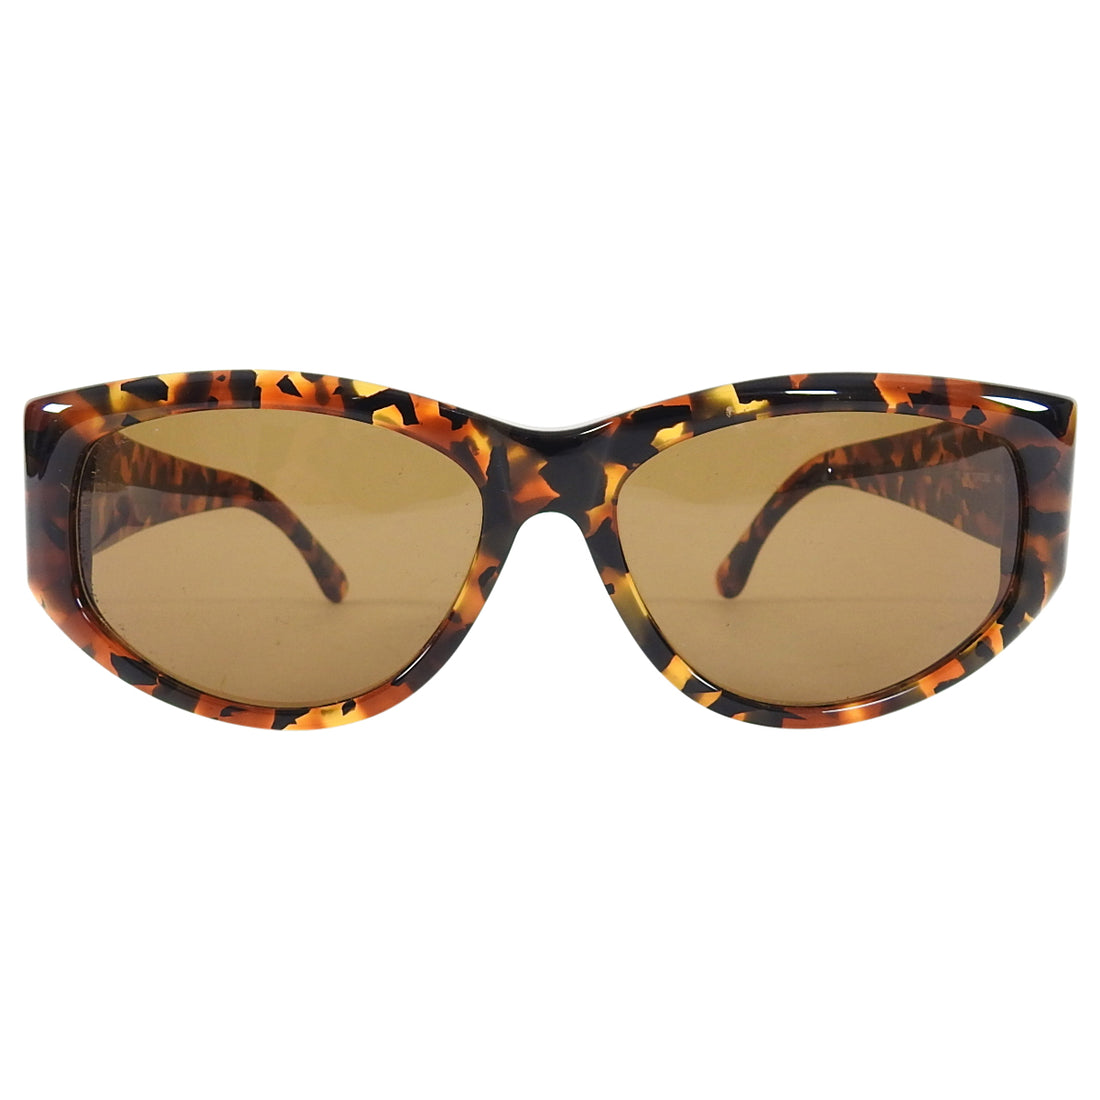 Fendi Vintage 1990's Tortoise and Gold Sunglasses FS146